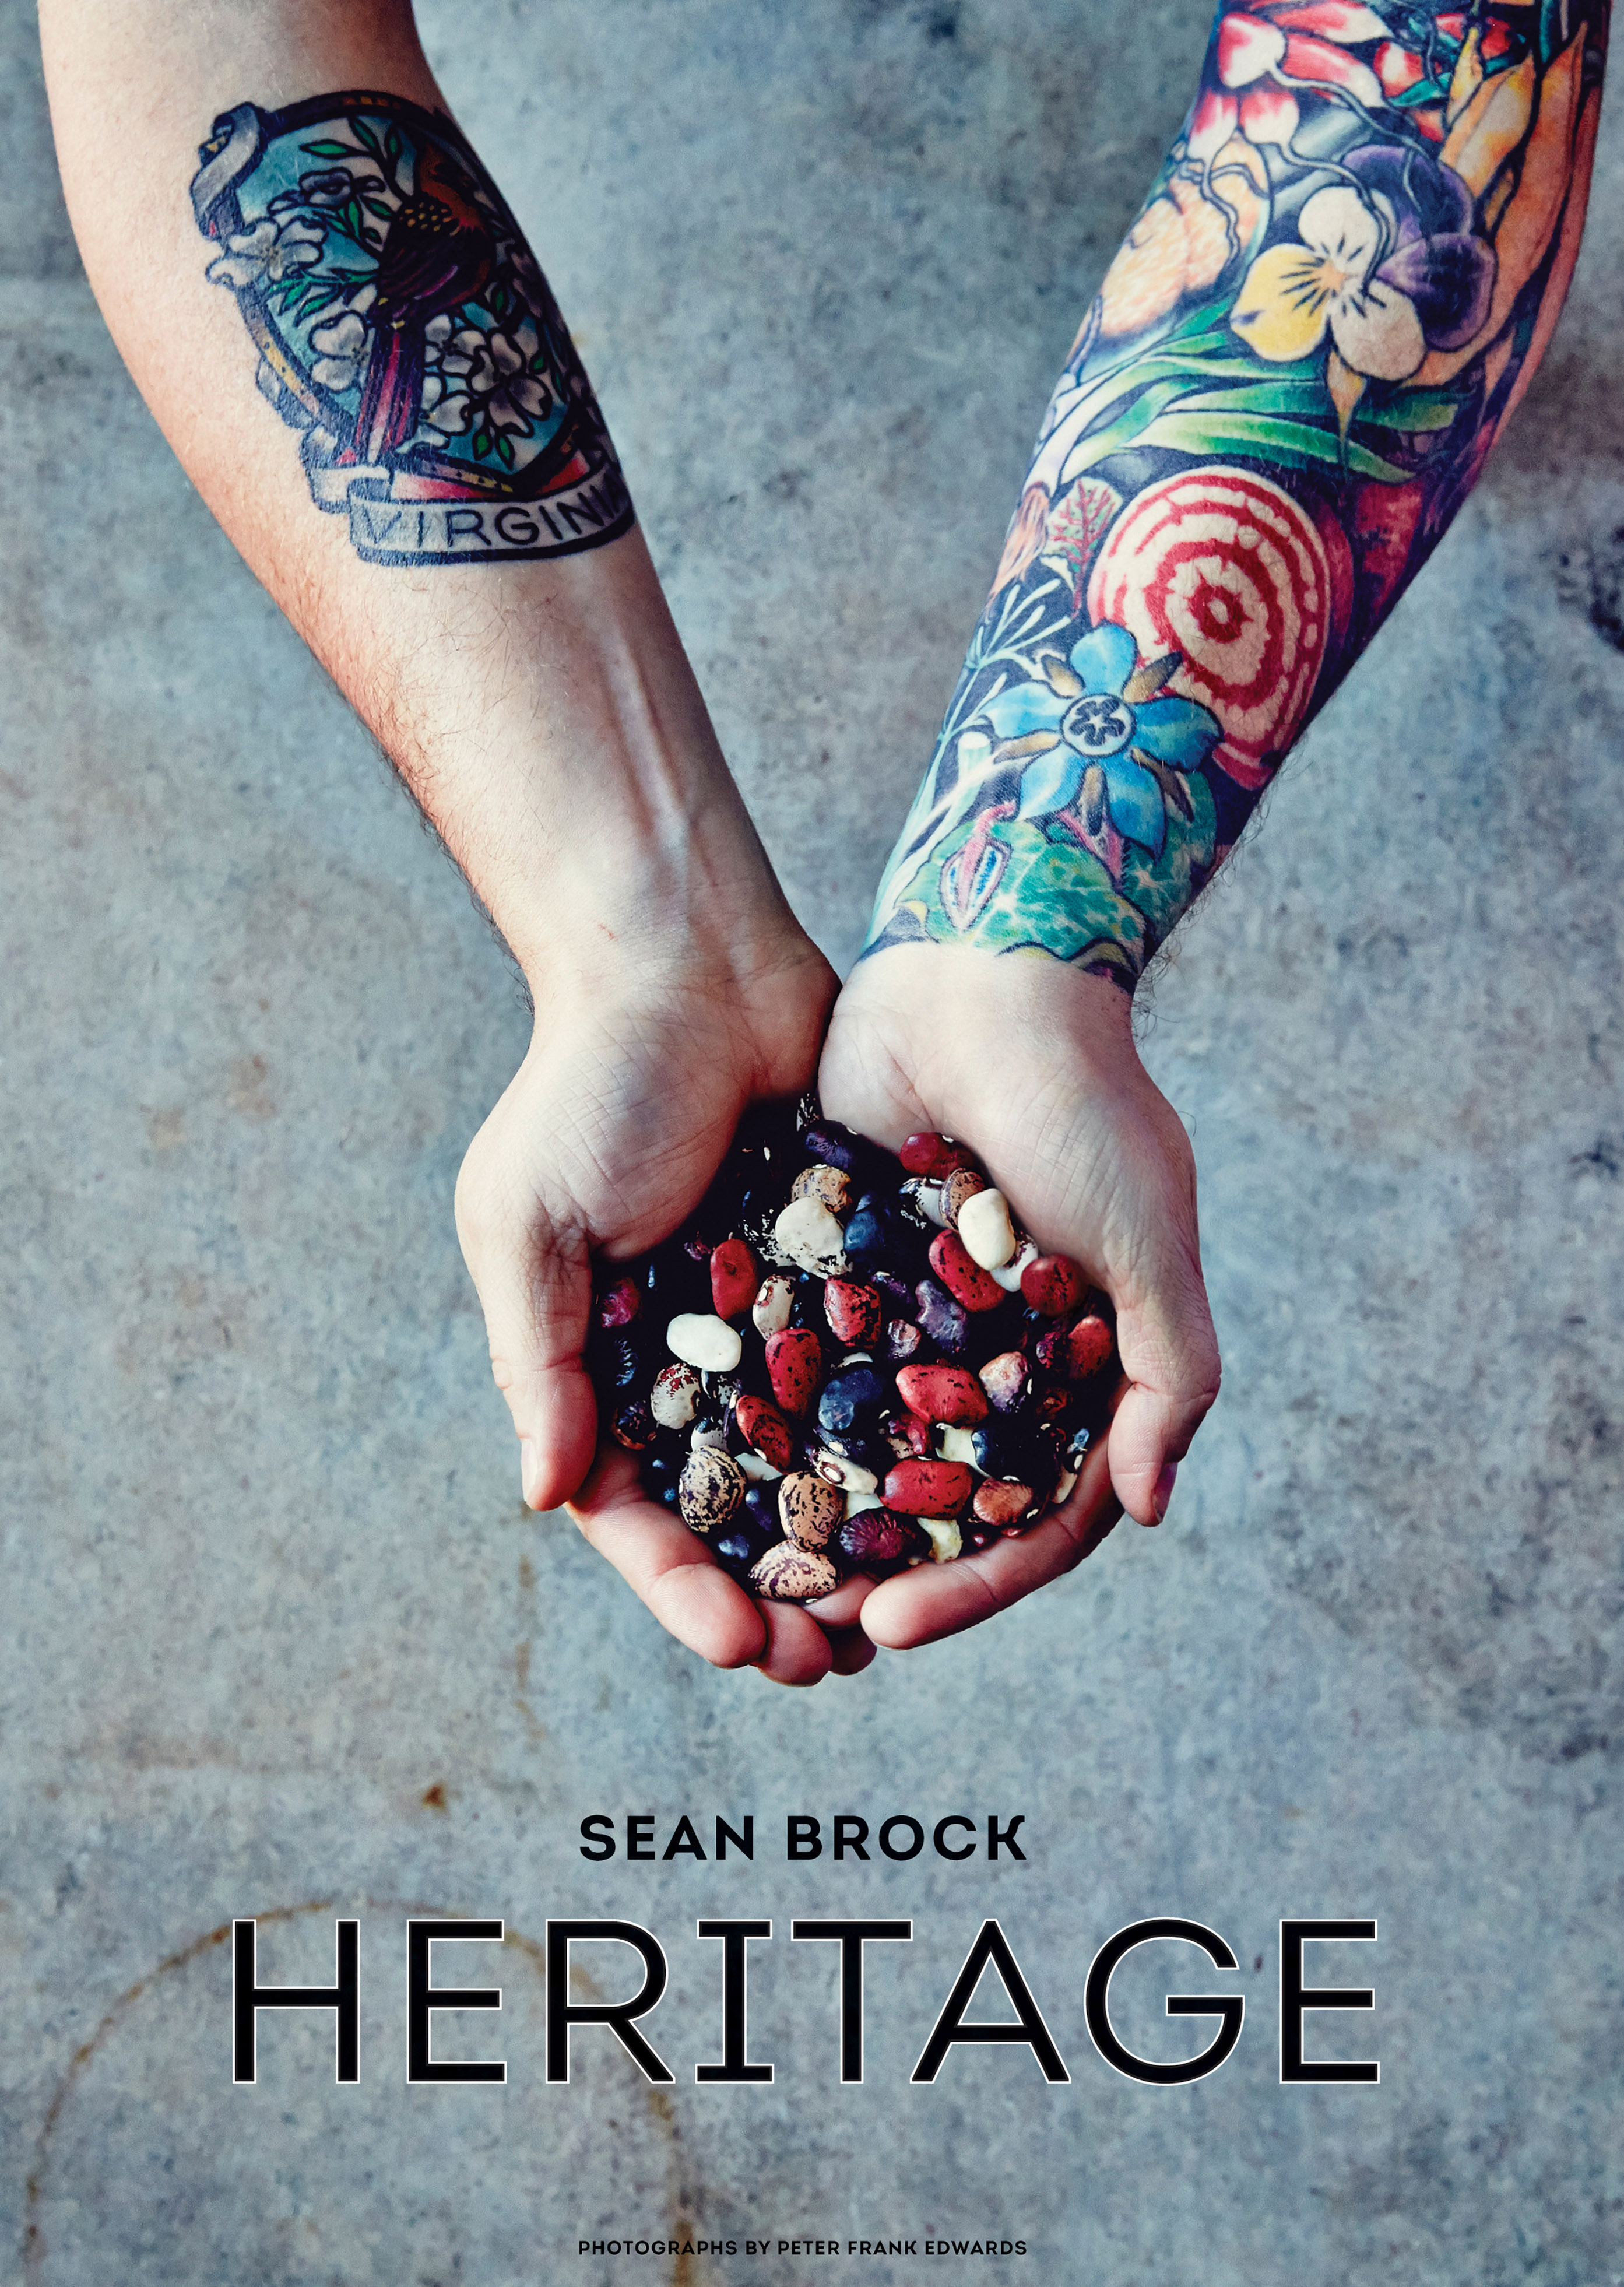 Brock's 'Heritage' is a soulful holiday gift for food lovers